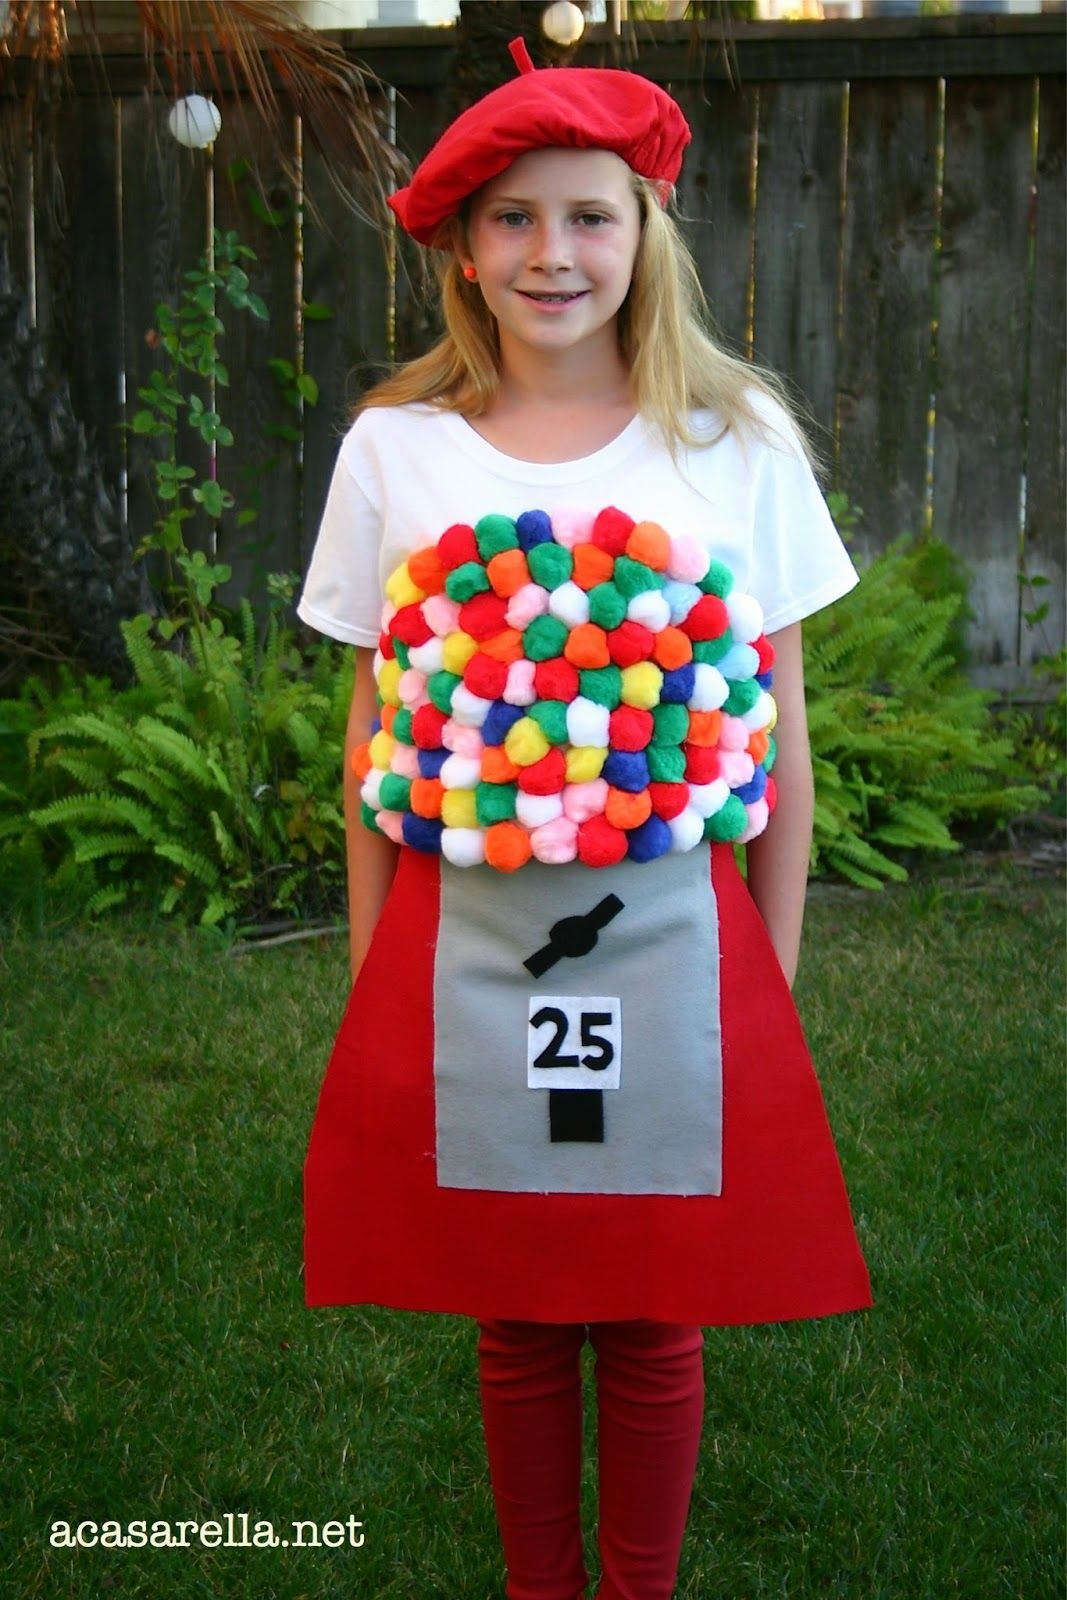 gumball machine halloween costume do it yourself it 39 s cheap and easy halloween fun. Black Bedroom Furniture Sets. Home Design Ideas